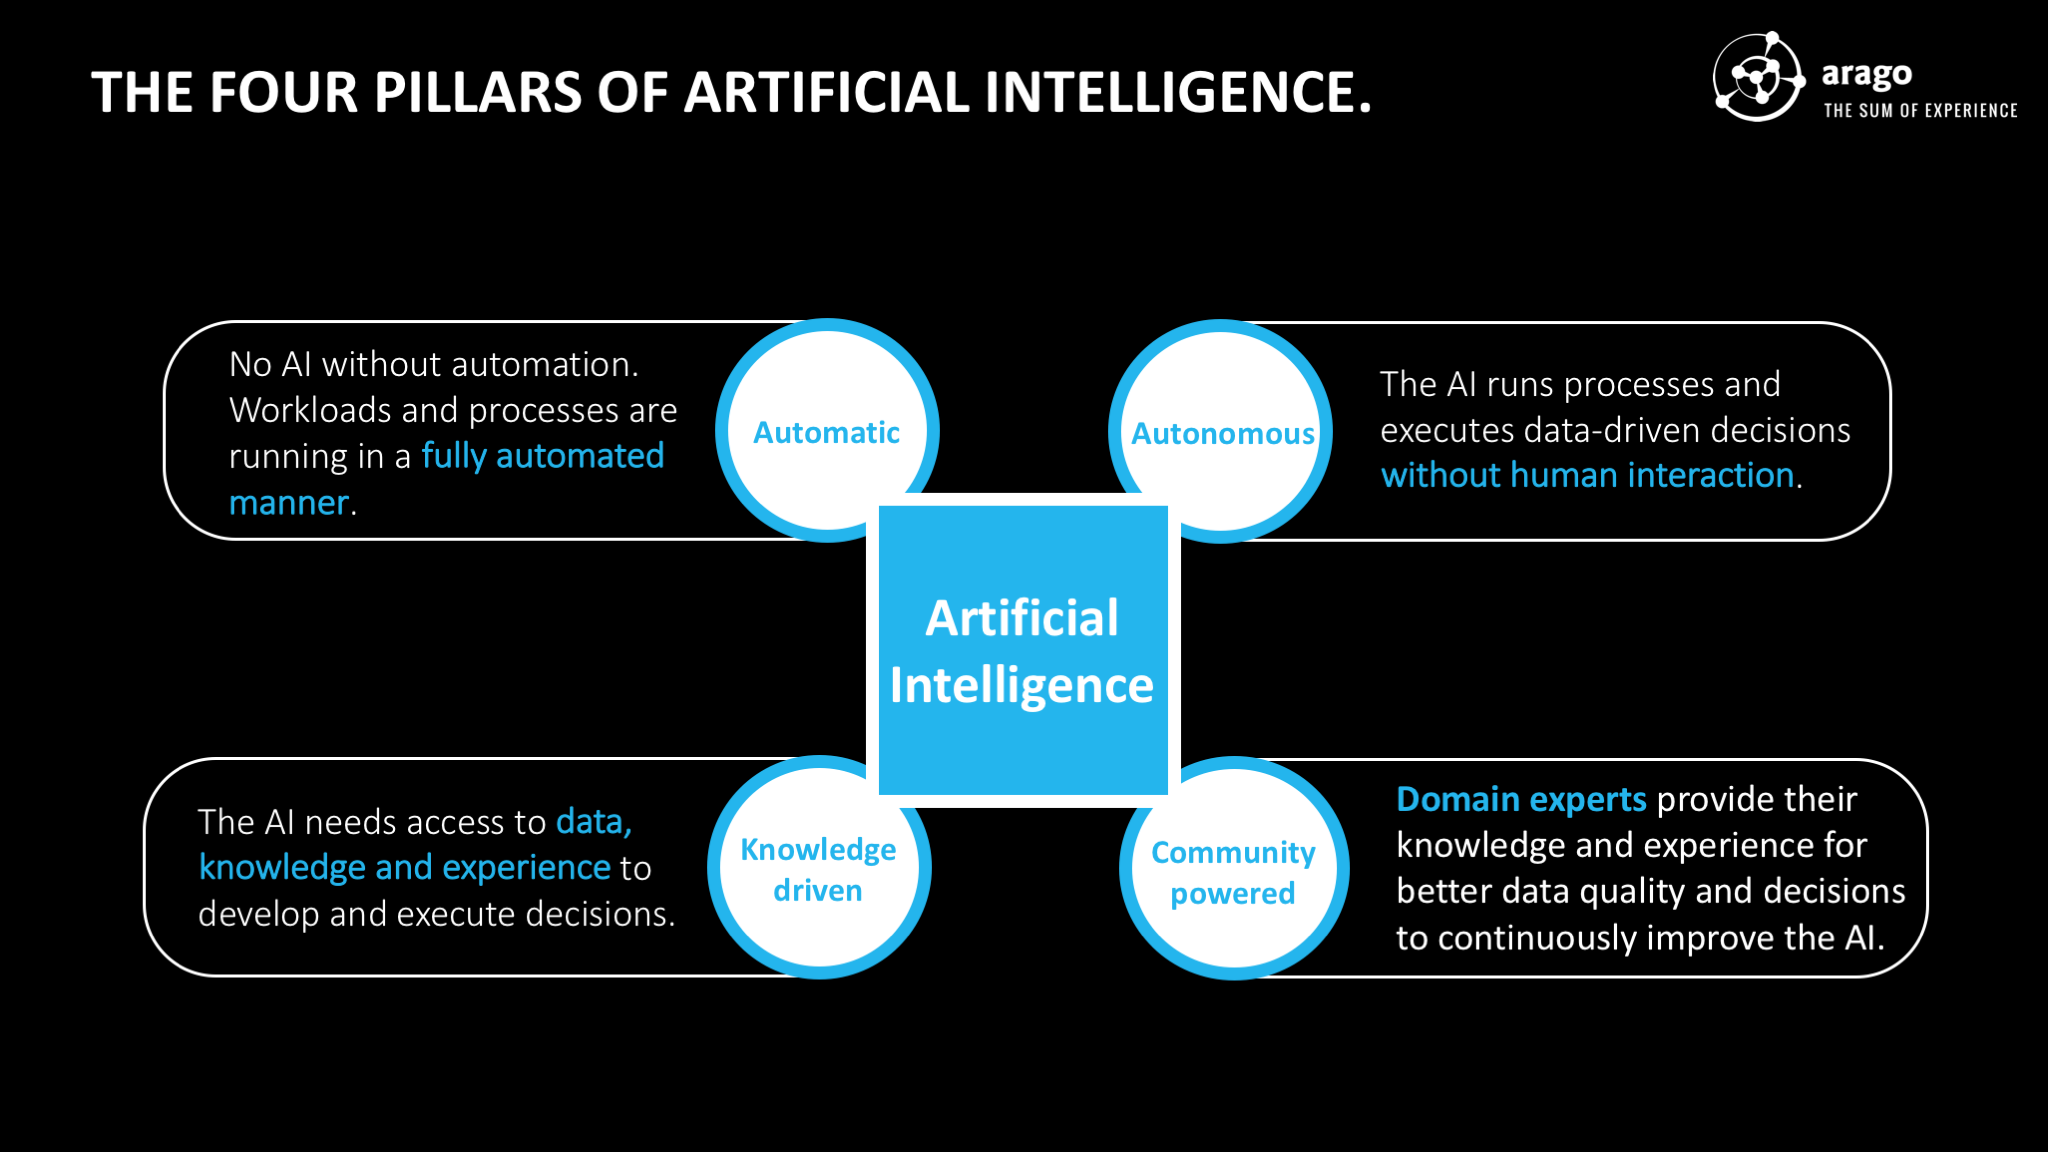 Figure: The Four Pillars of Artificial Intelligence.